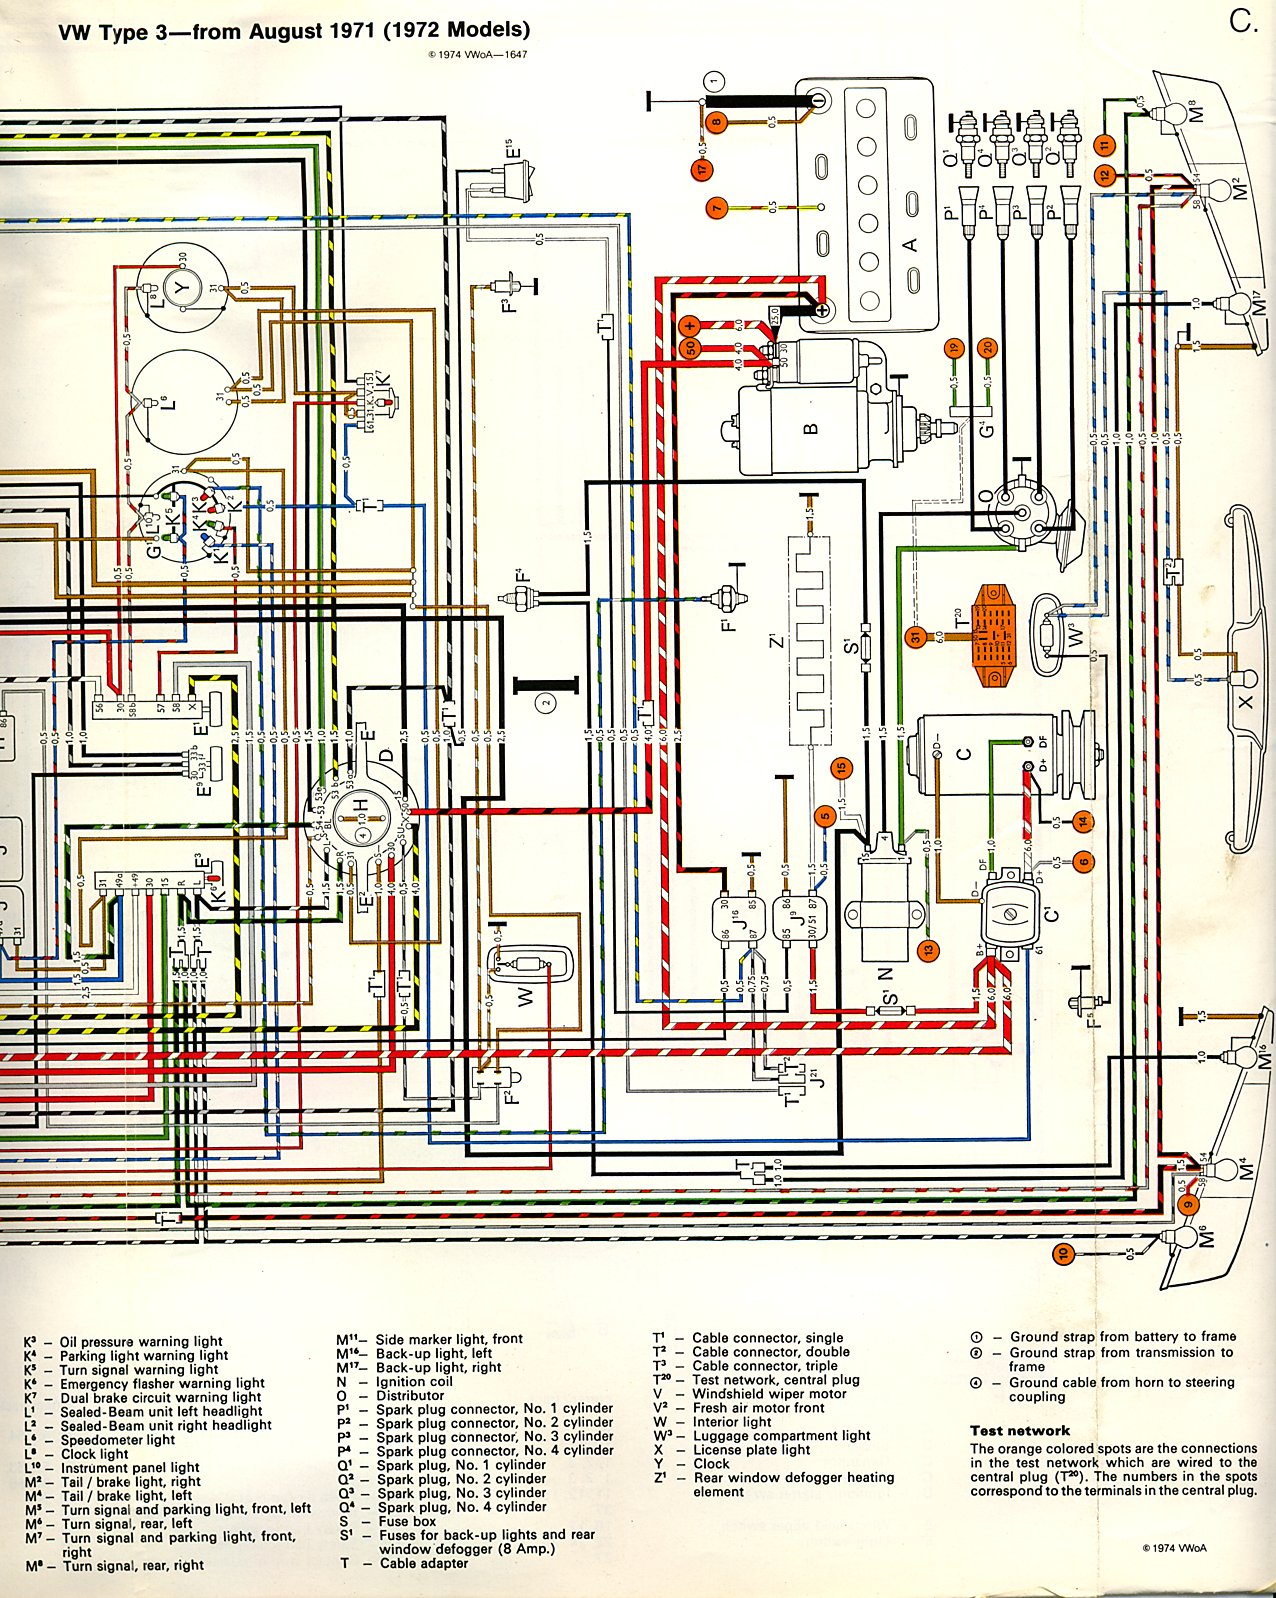 Turn Signal Wiring Diagram Vw 181 Diy Enthusiasts Diagrams Dune Buggy Thesamba Com Type 3 Rh Everlasting Universal